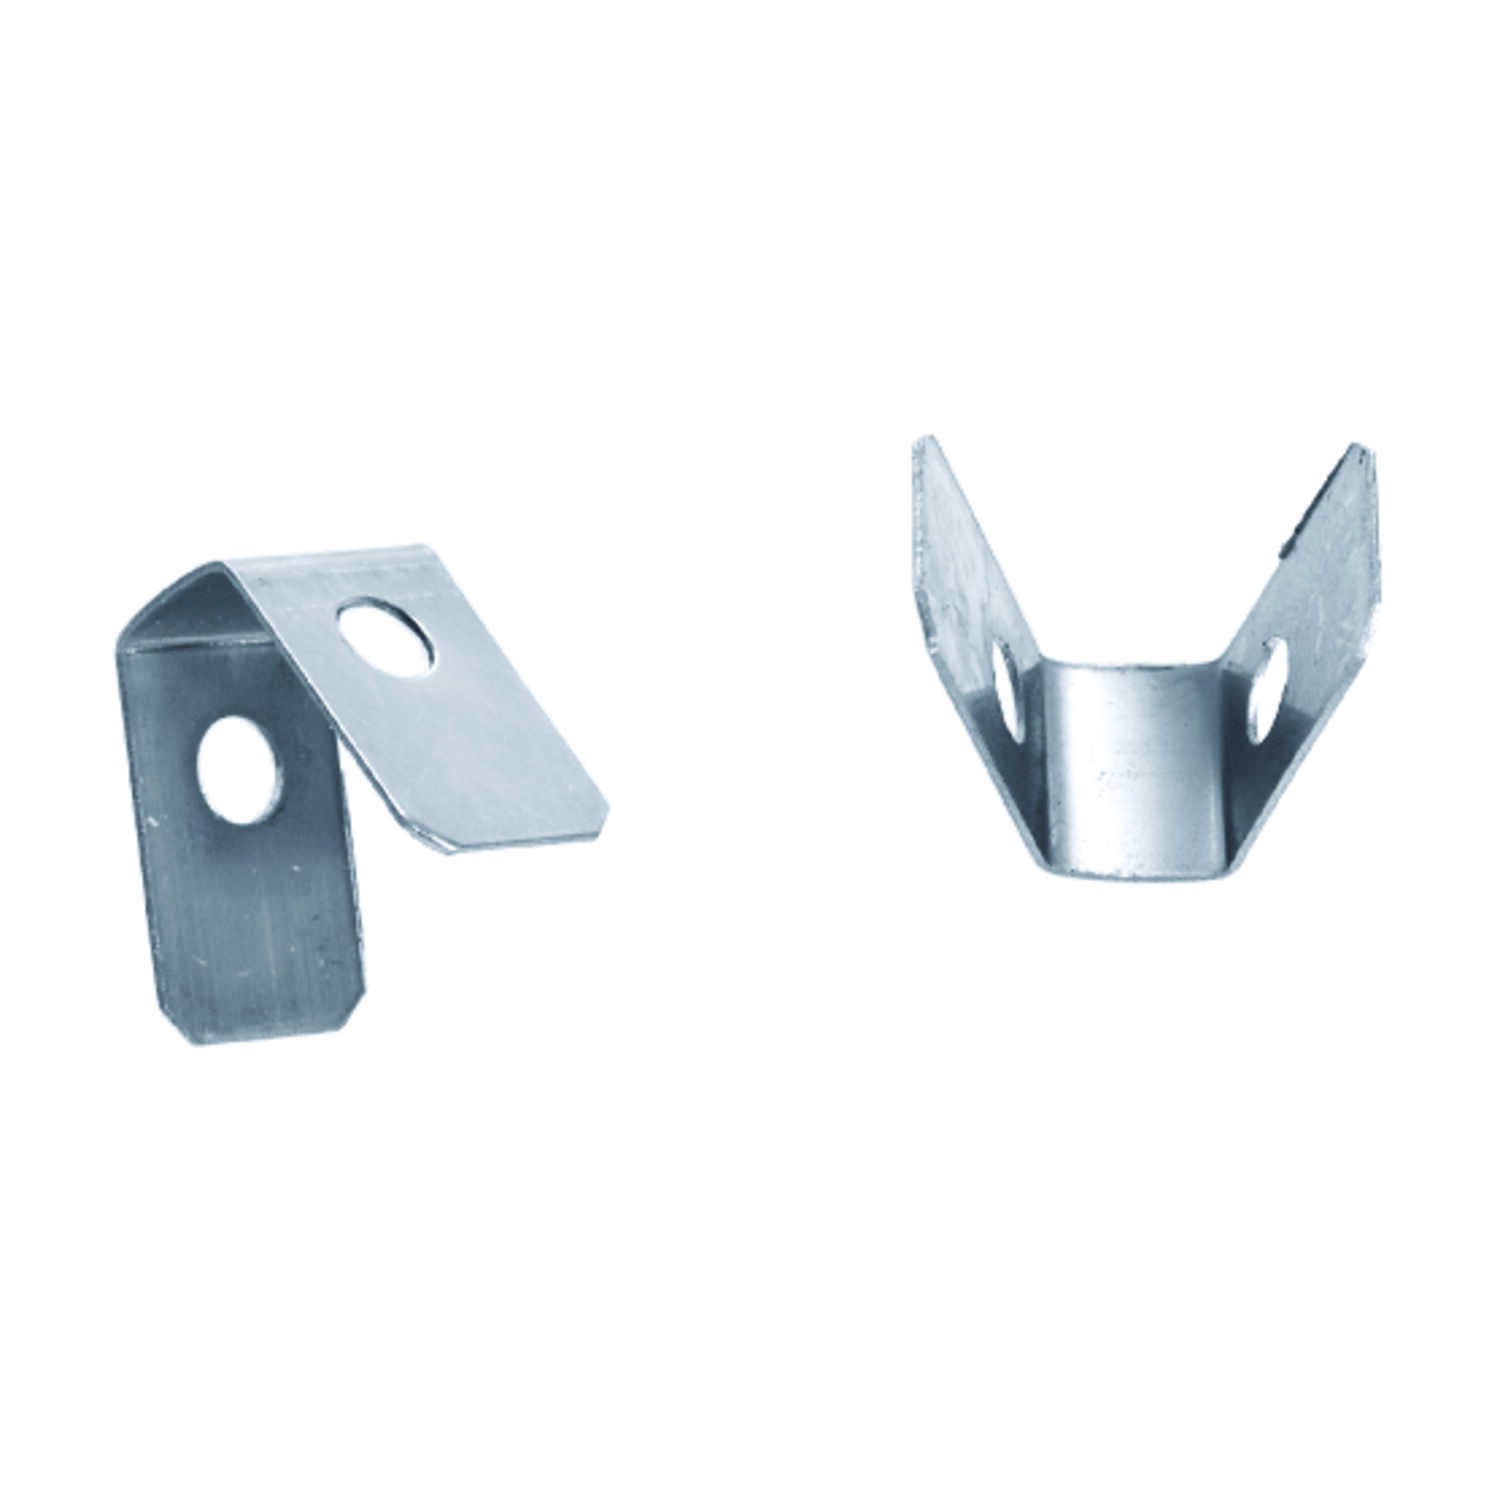 Danco  Hot and Cold  Clevis Clip  Steel